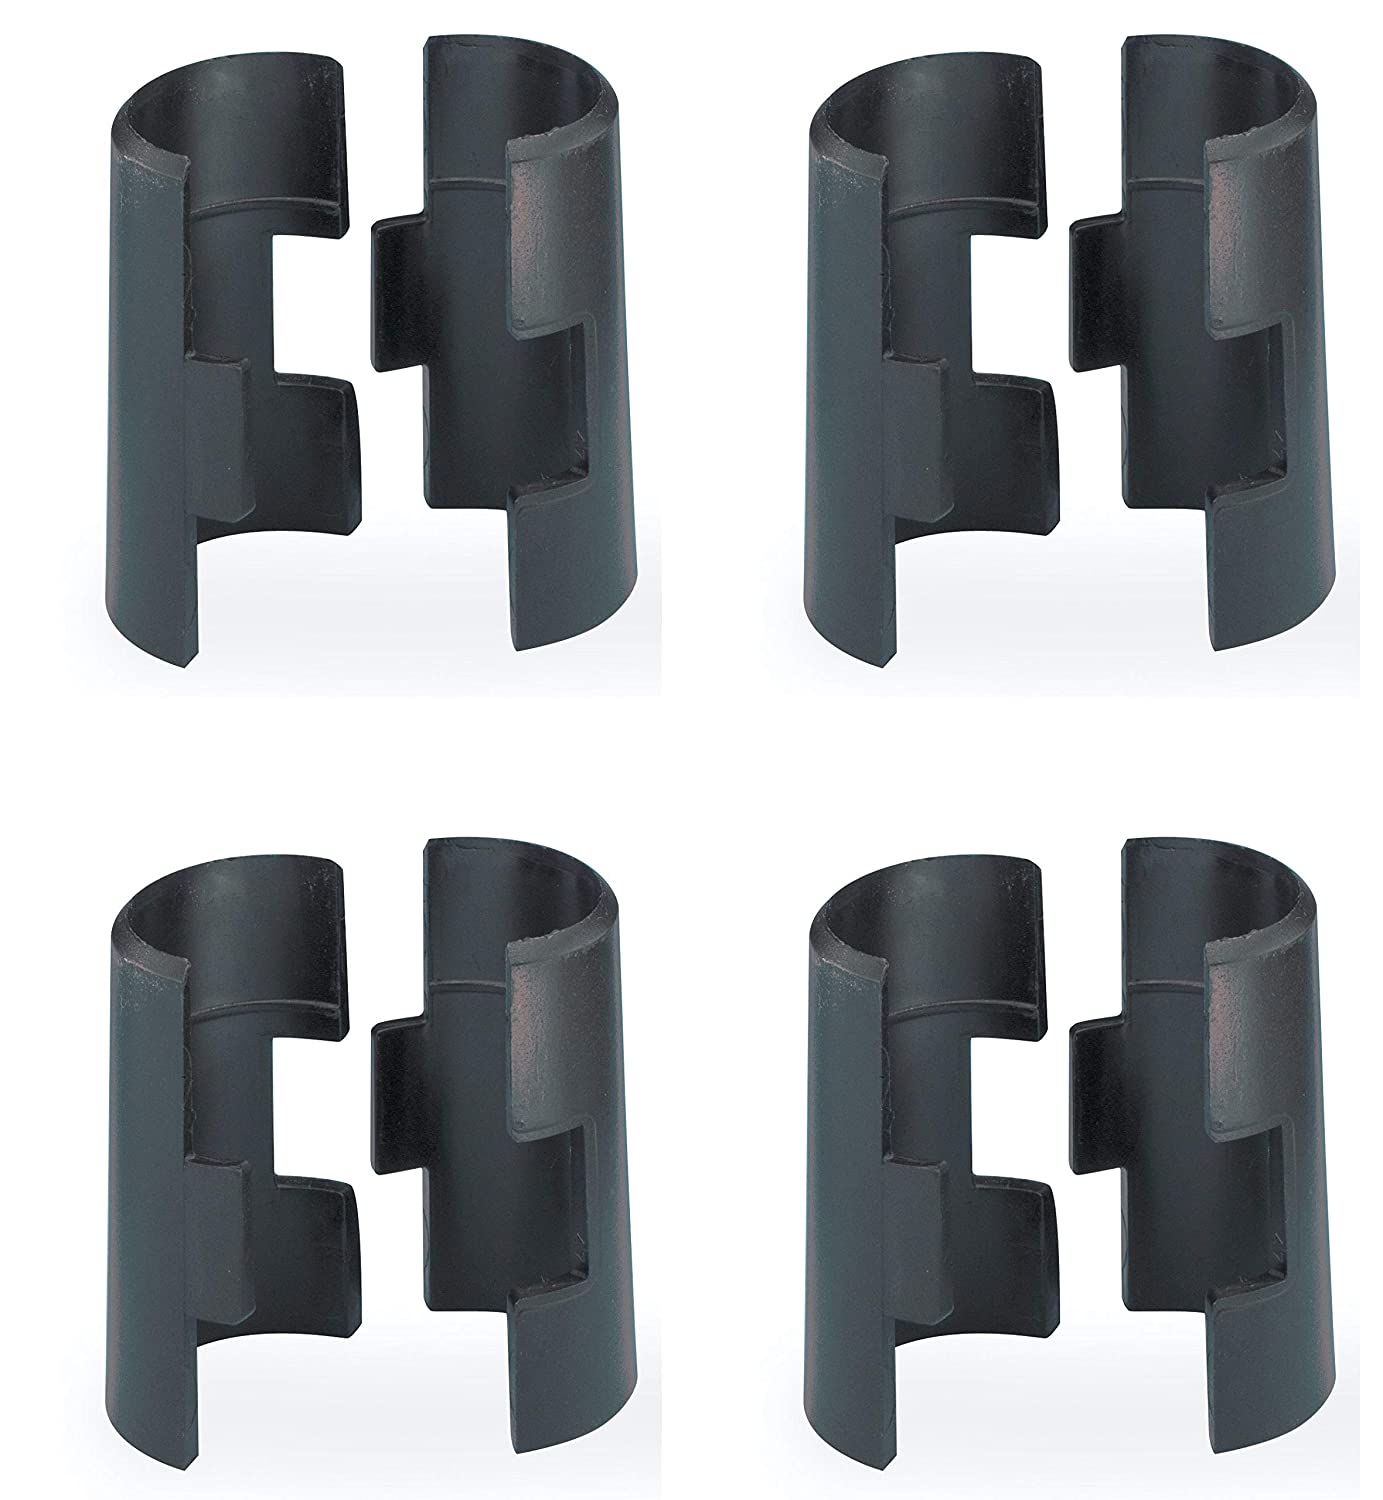 METRO 9985 Replacement Plastic Split Sleeves for Super Erecta Industrial Wire Shelving, Black, Pack of 4